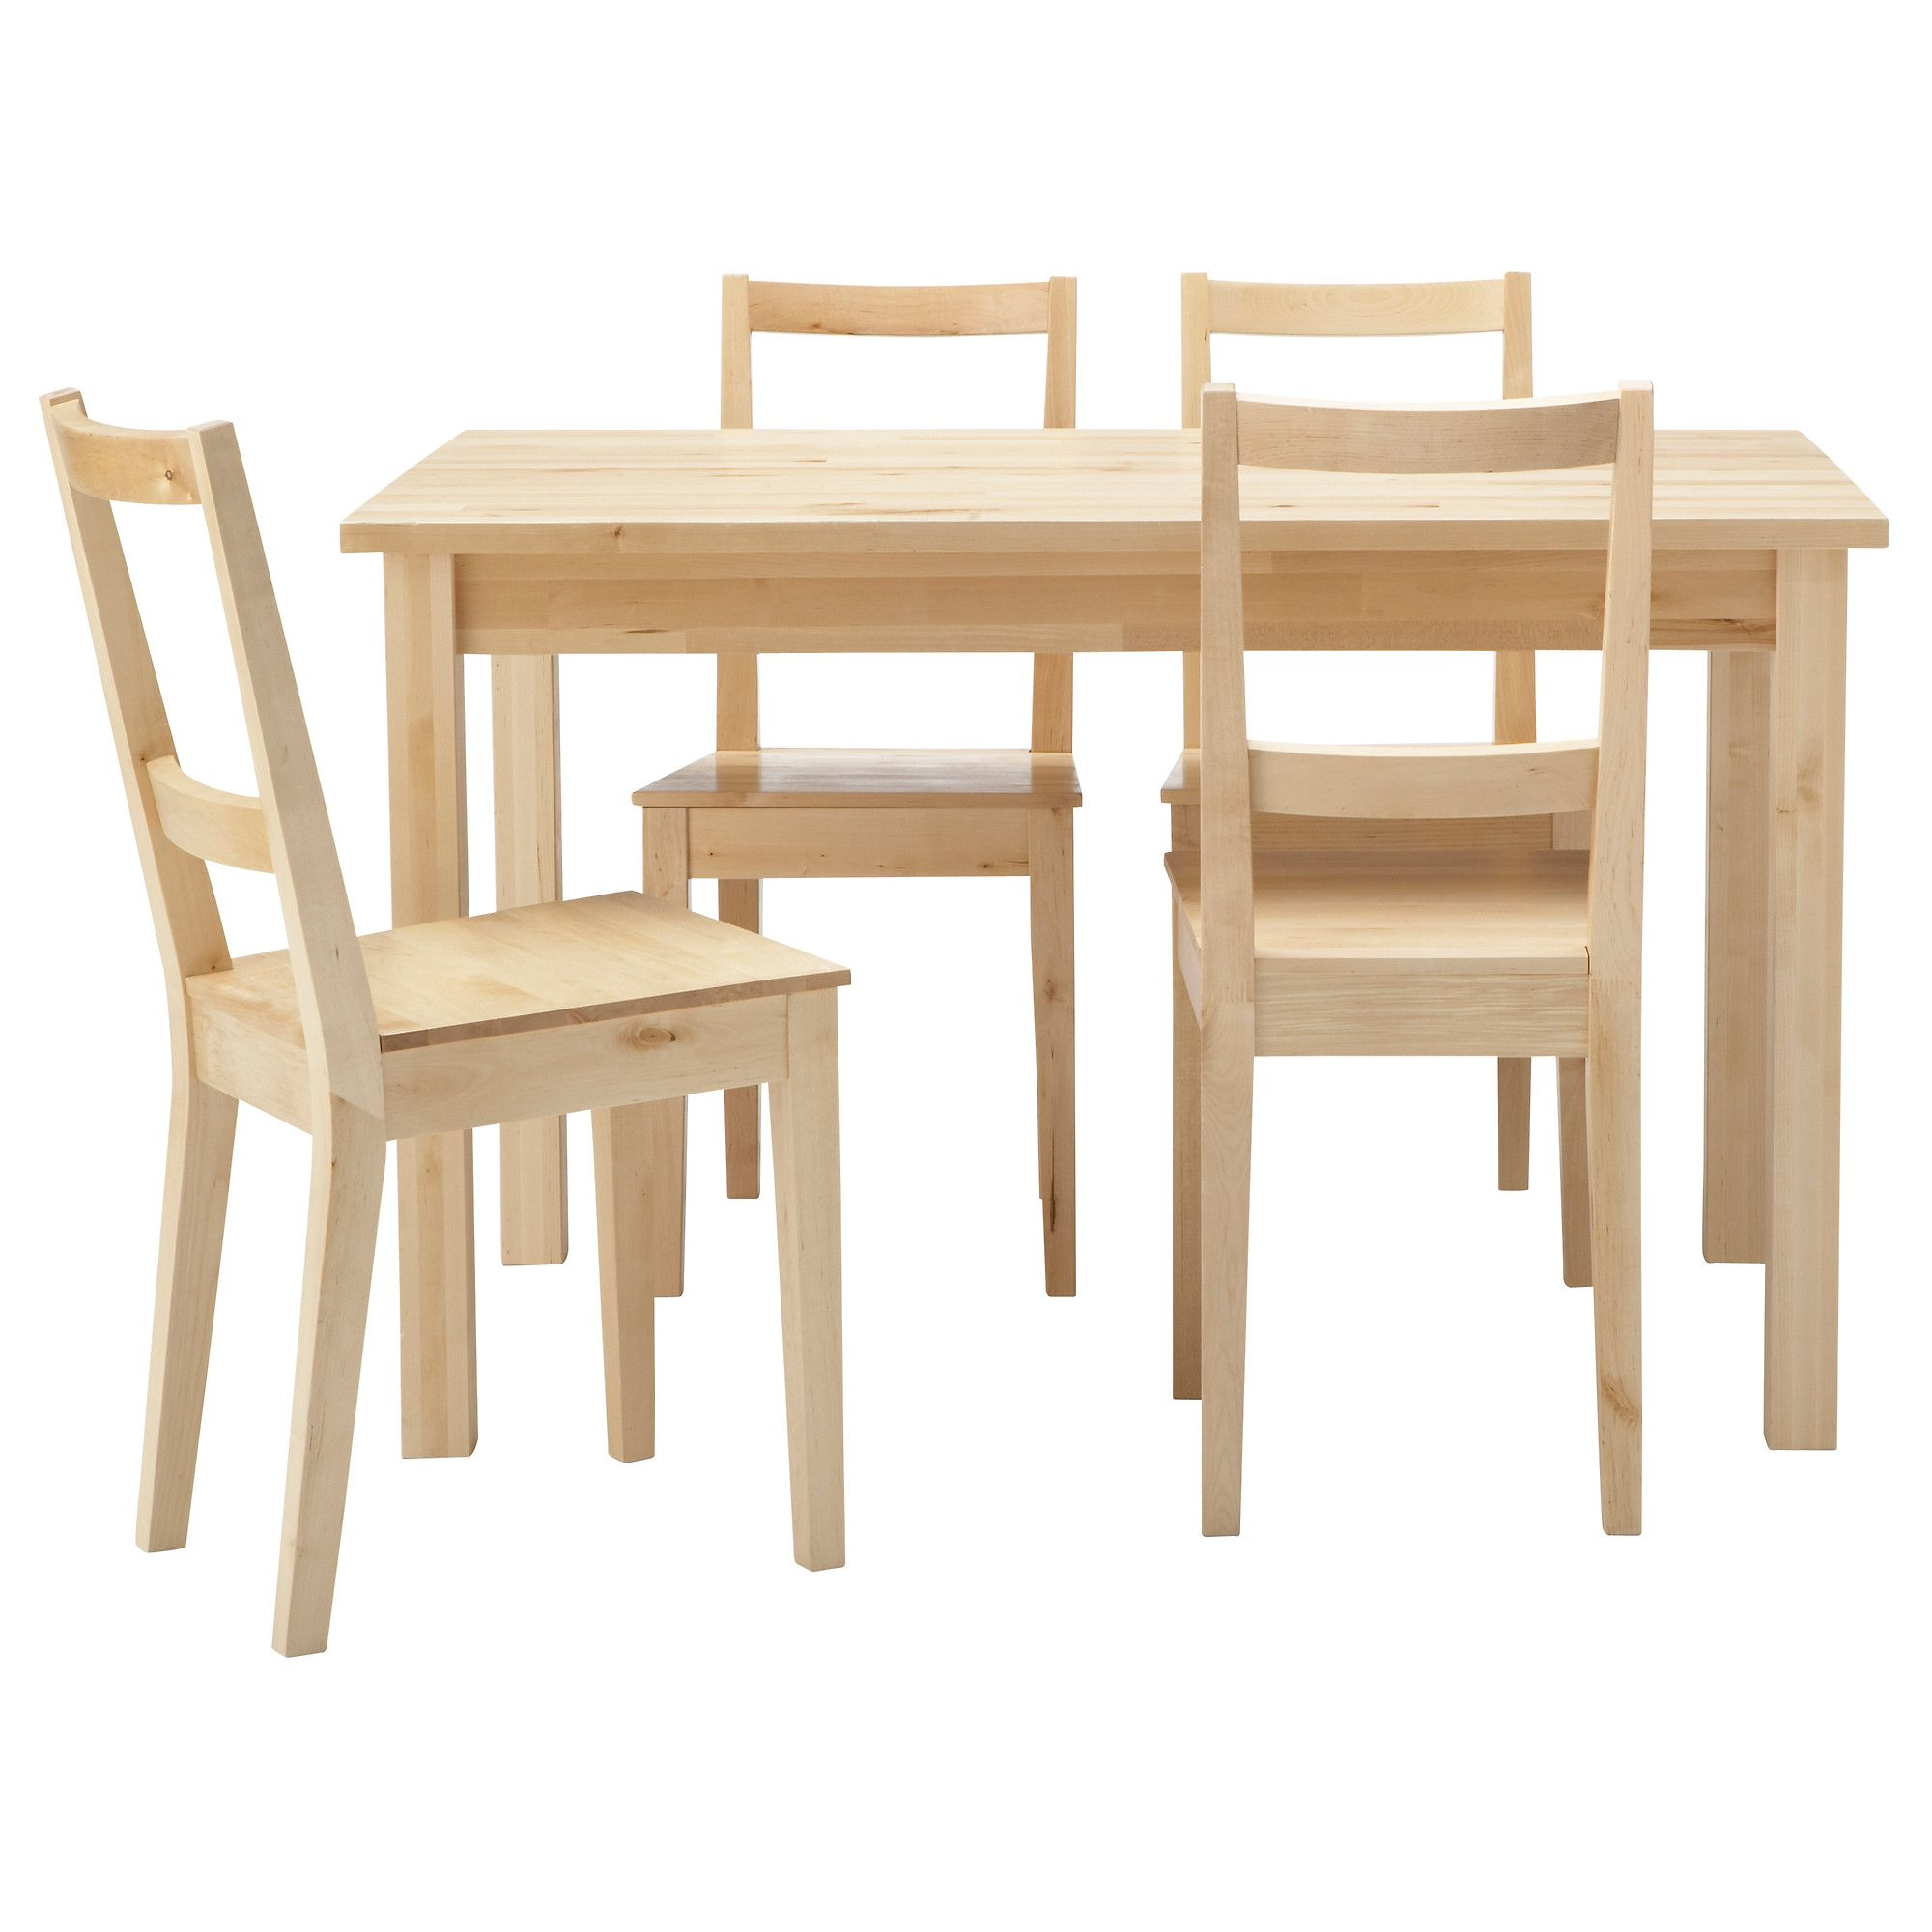 Dining room furniture appealing ikea dining sets with dining table and chairs furniture Dining bench ikea